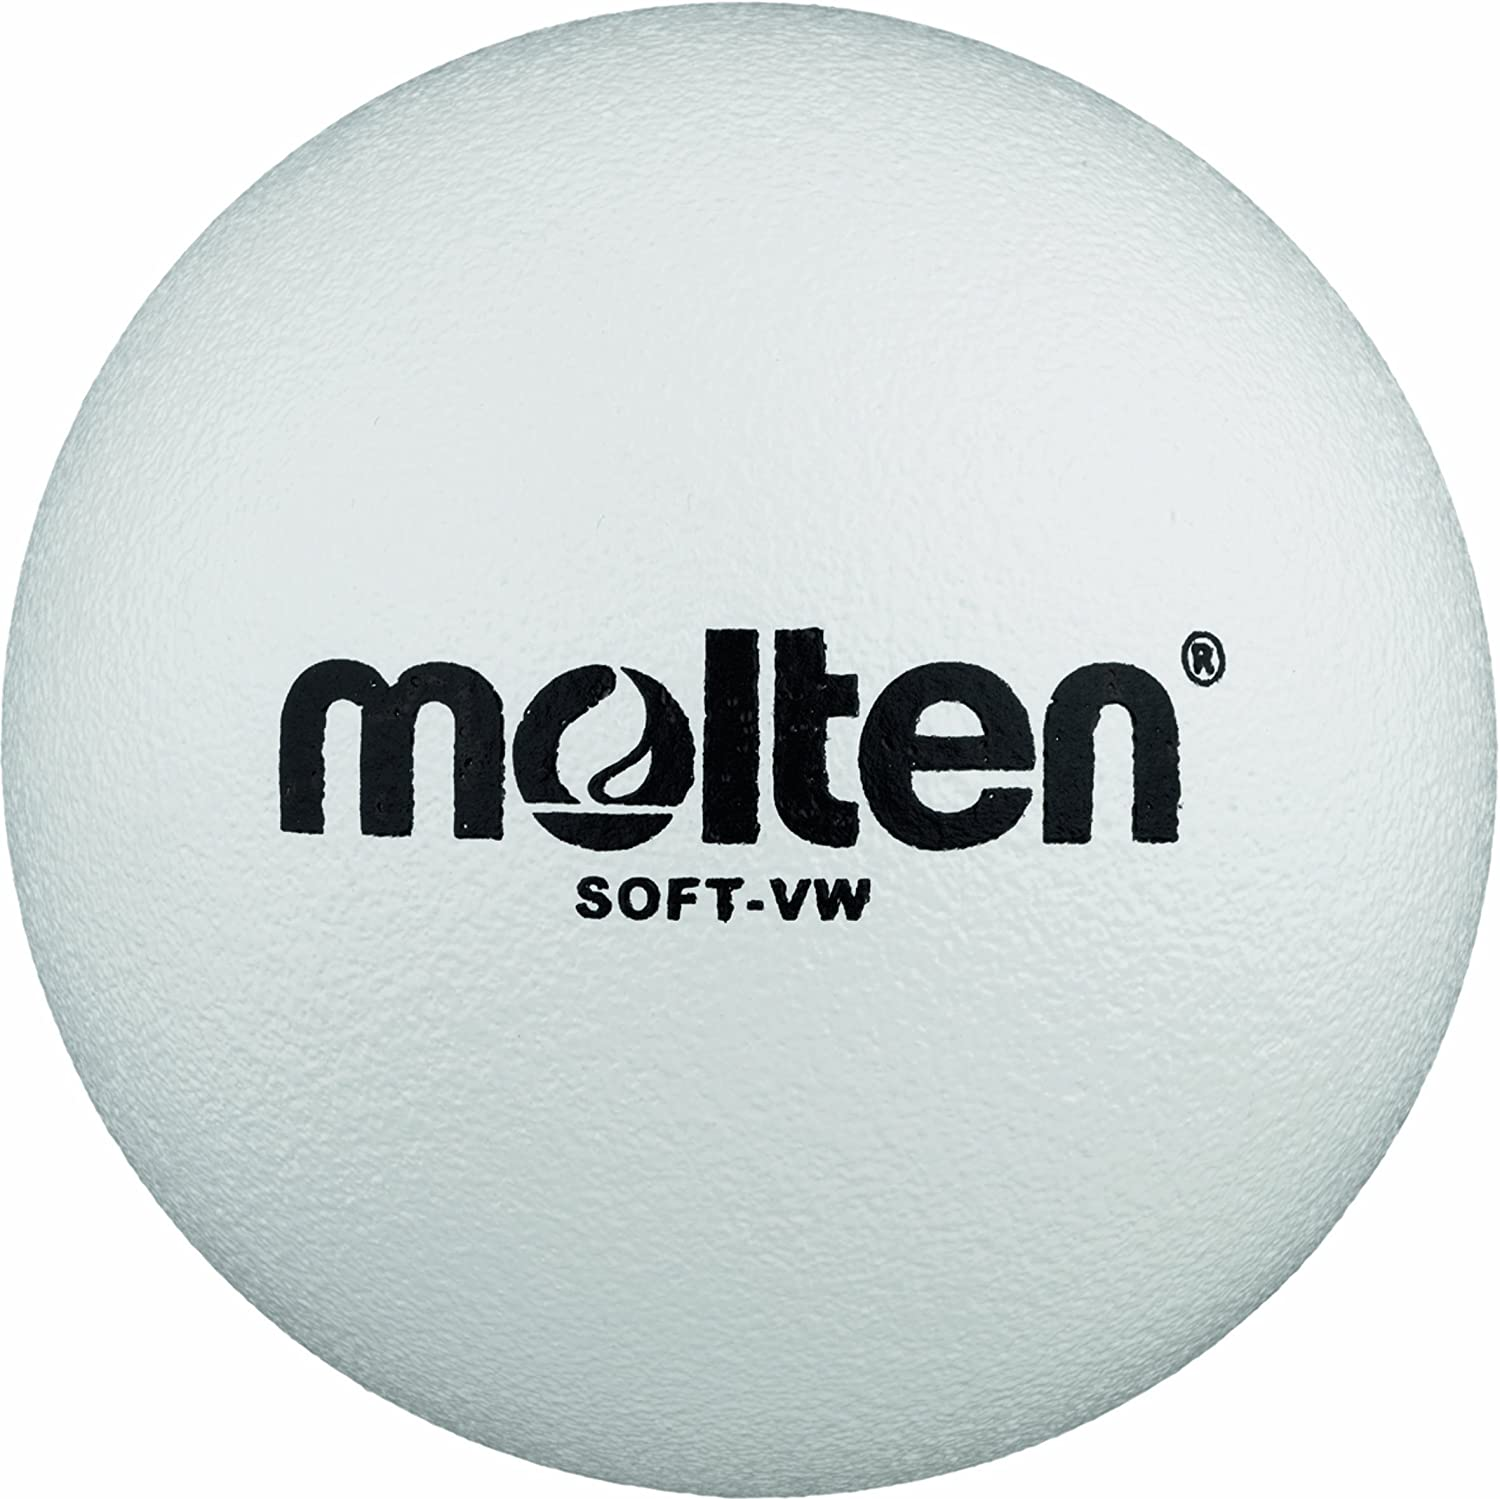 Molten Soft-VW Ballon mousse volley-ball Blanc Ø 210 mm